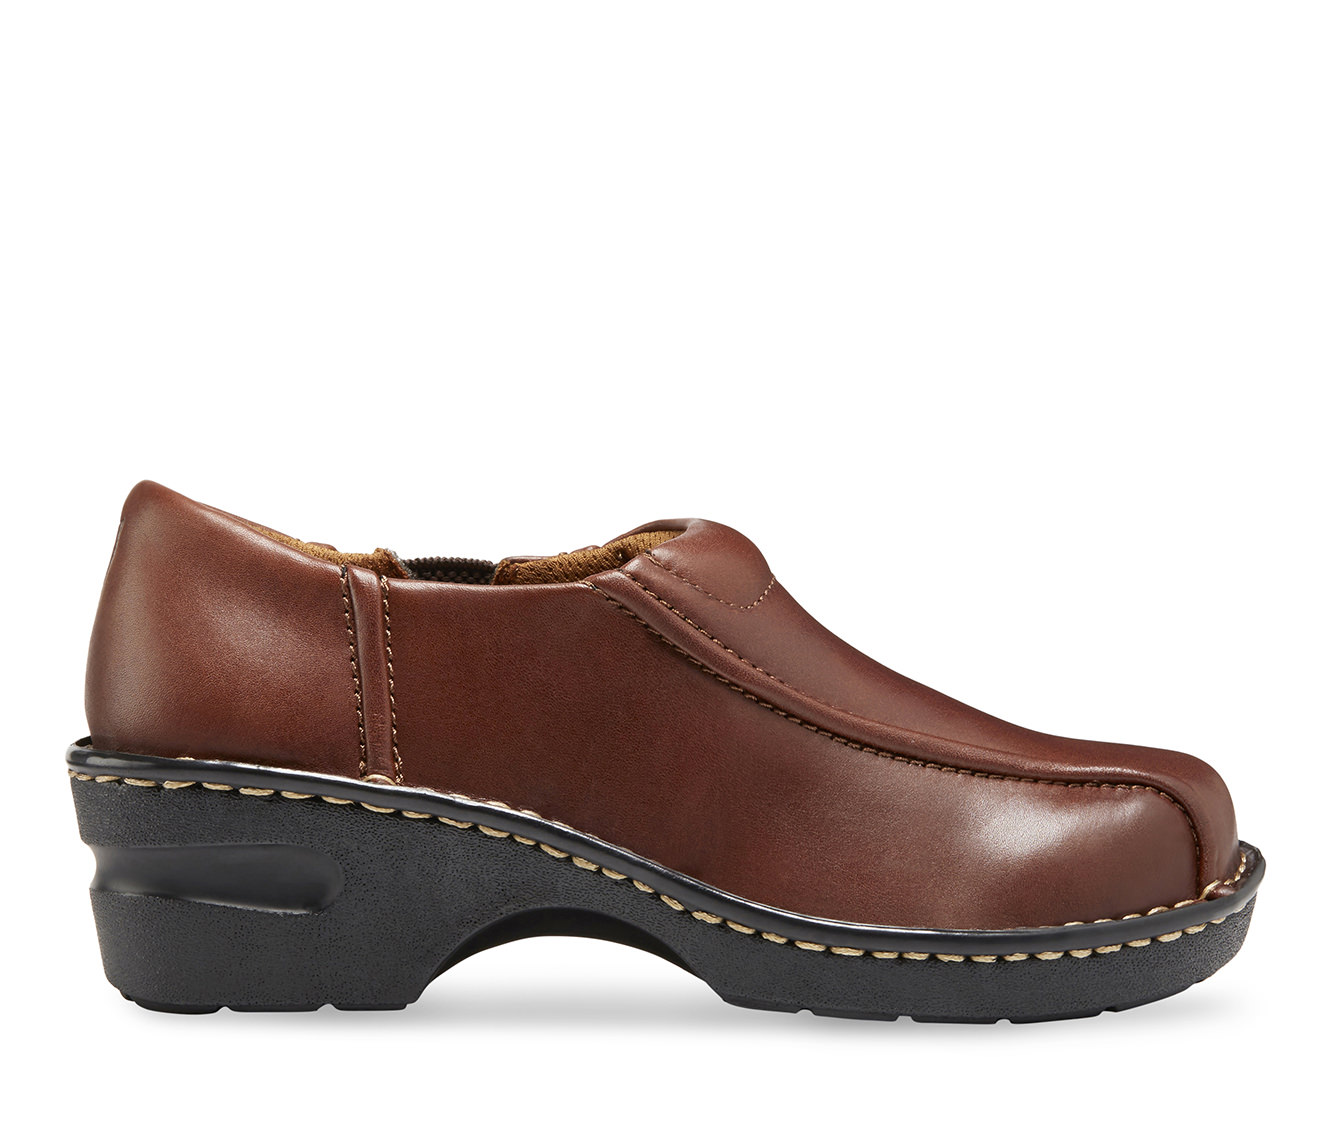 Eastland Tracie Women's Shoe (Brown Leather)